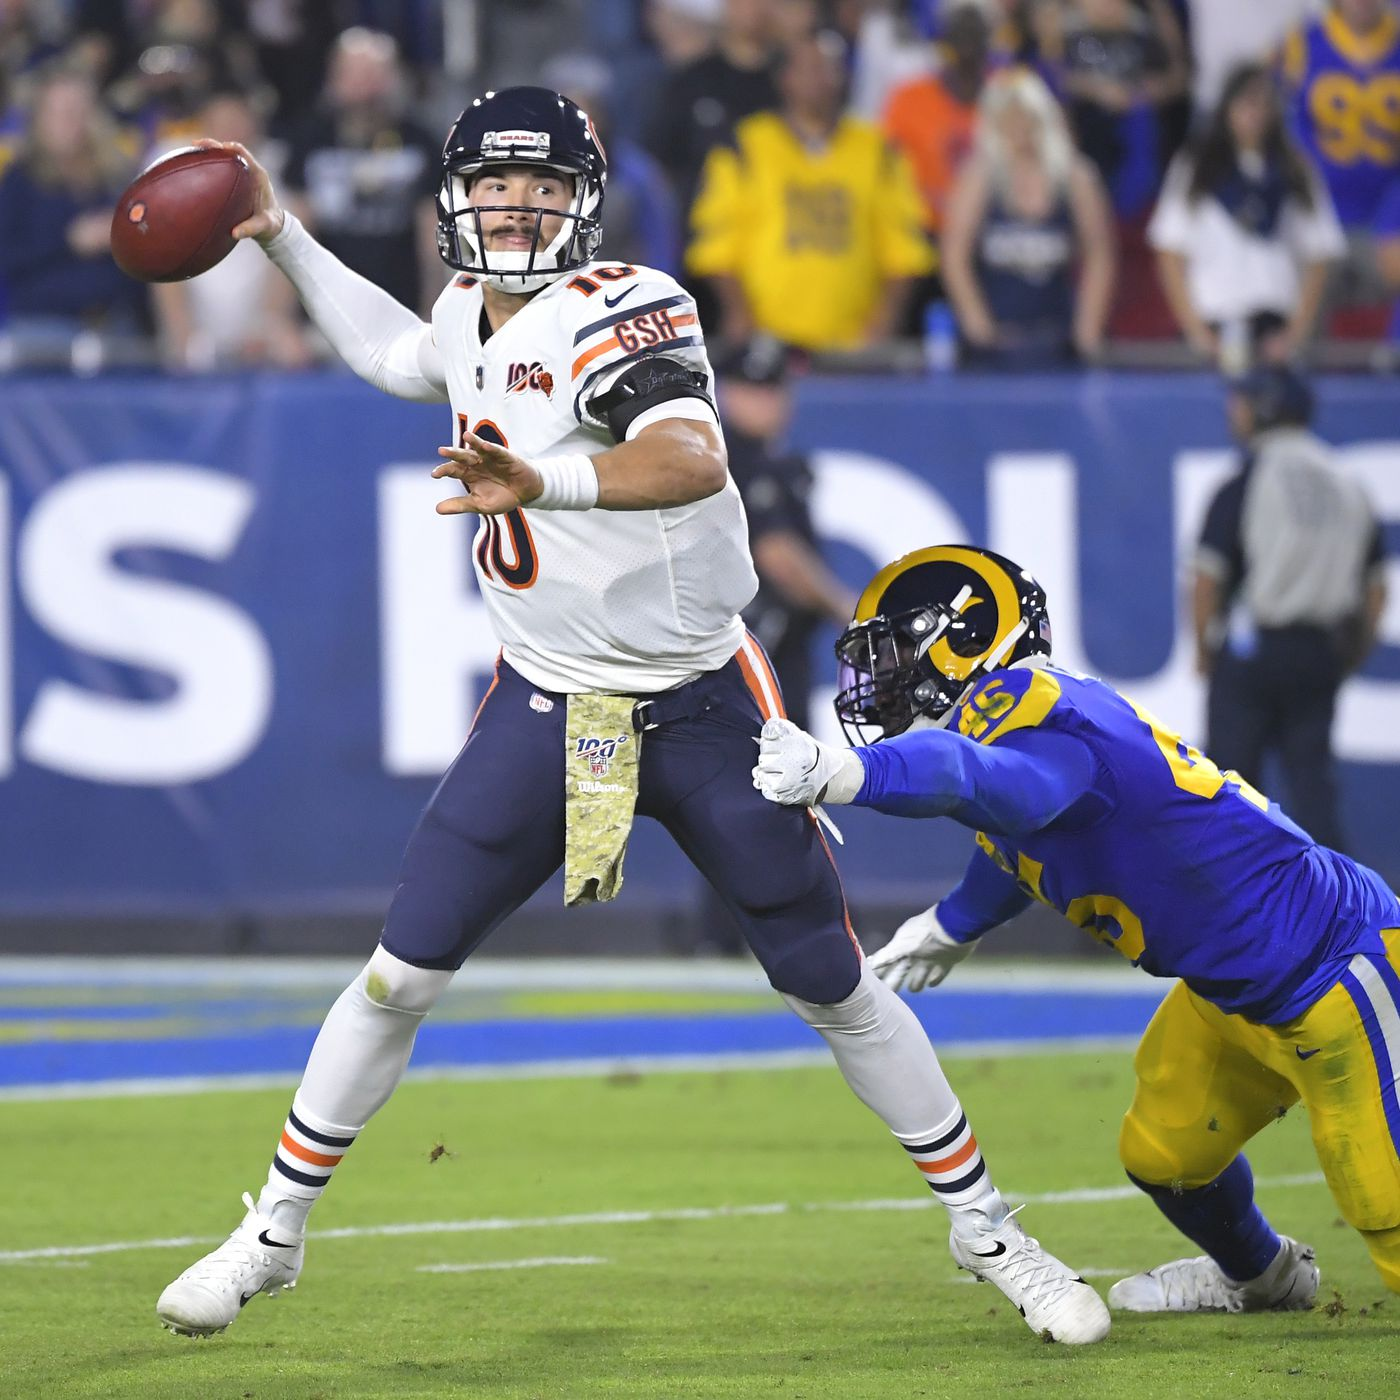 Bears Schedule Has 2 Monday Night Football Appearances Chicago Sun Times